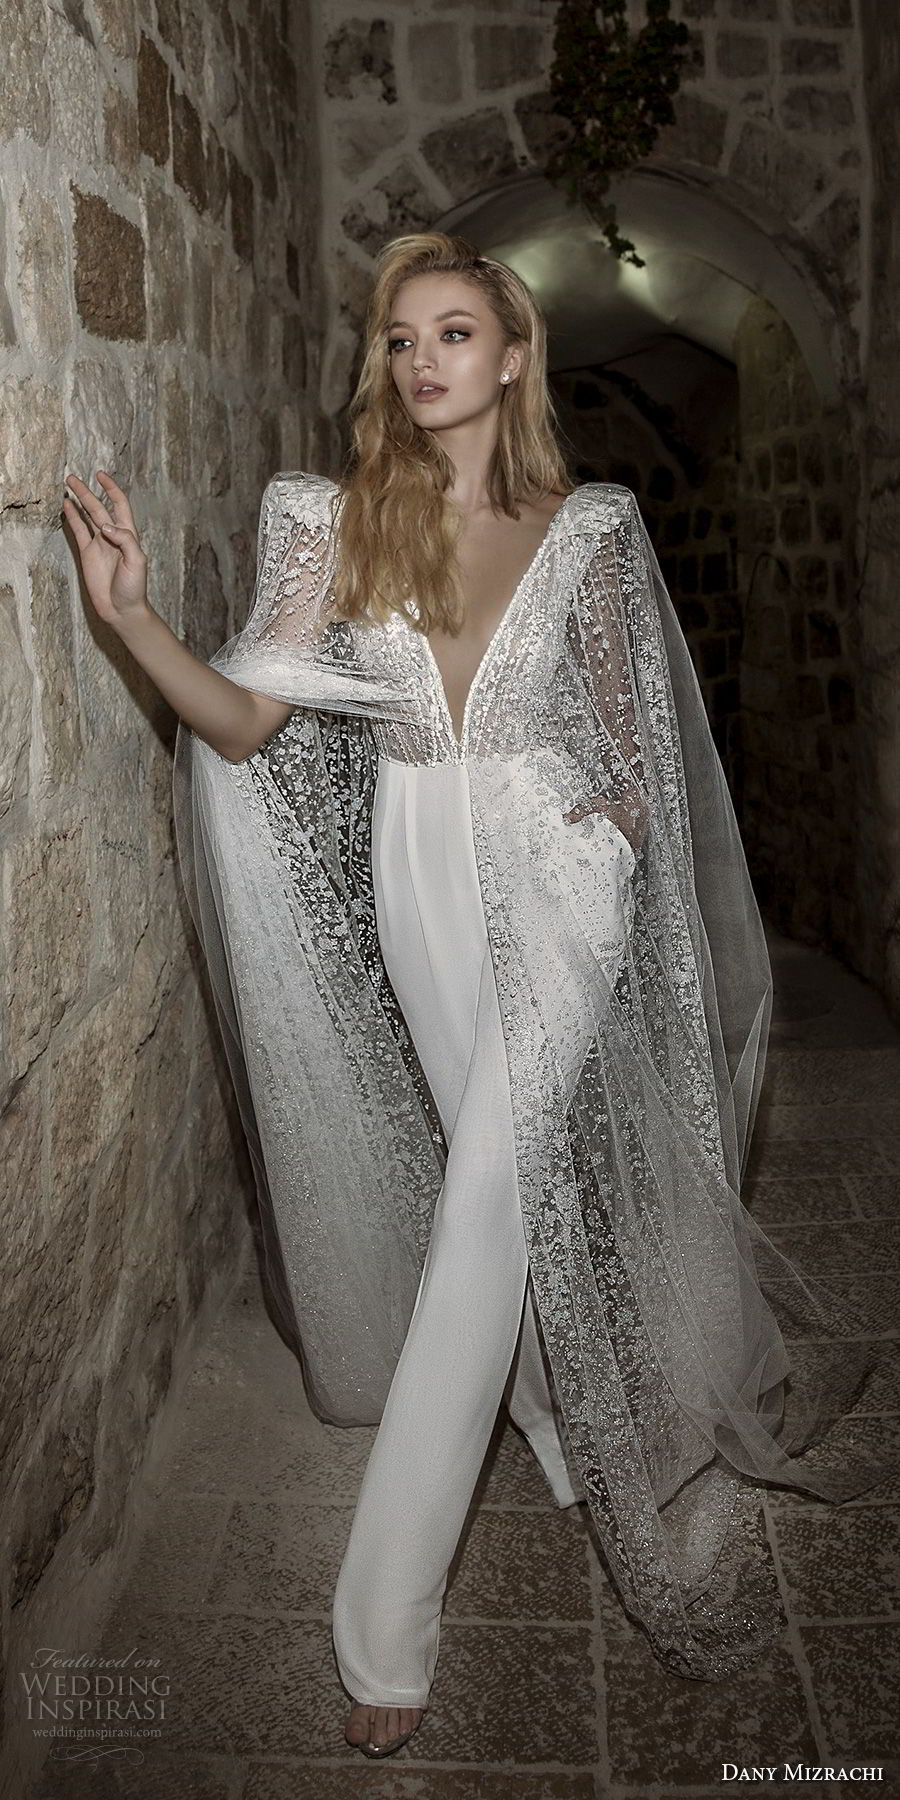 dany mizrachi spring 2018 bridal cap sleeves deep plunging v neck heavily embellished bodice sophiscated jumpsuit wedding dress open v back (36) mv